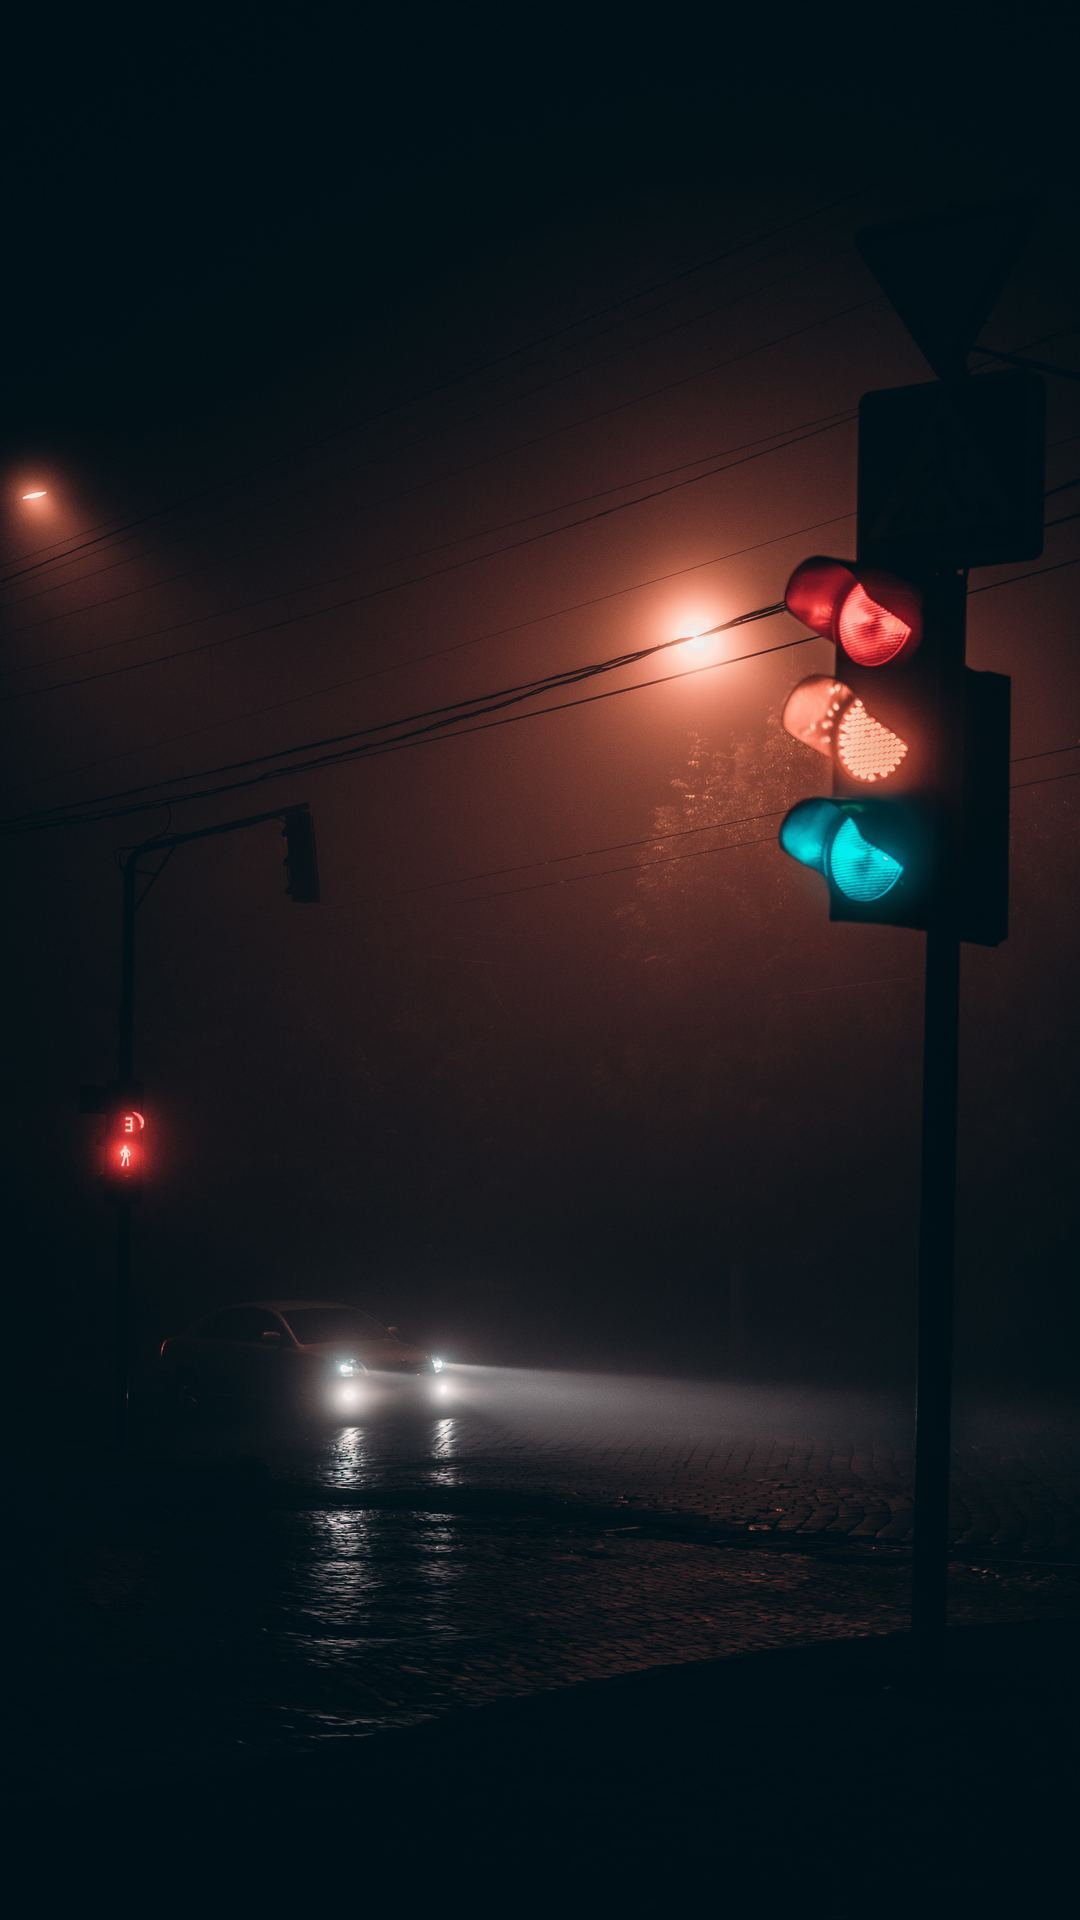 Traffic Lights Night iPhone Wallpaper